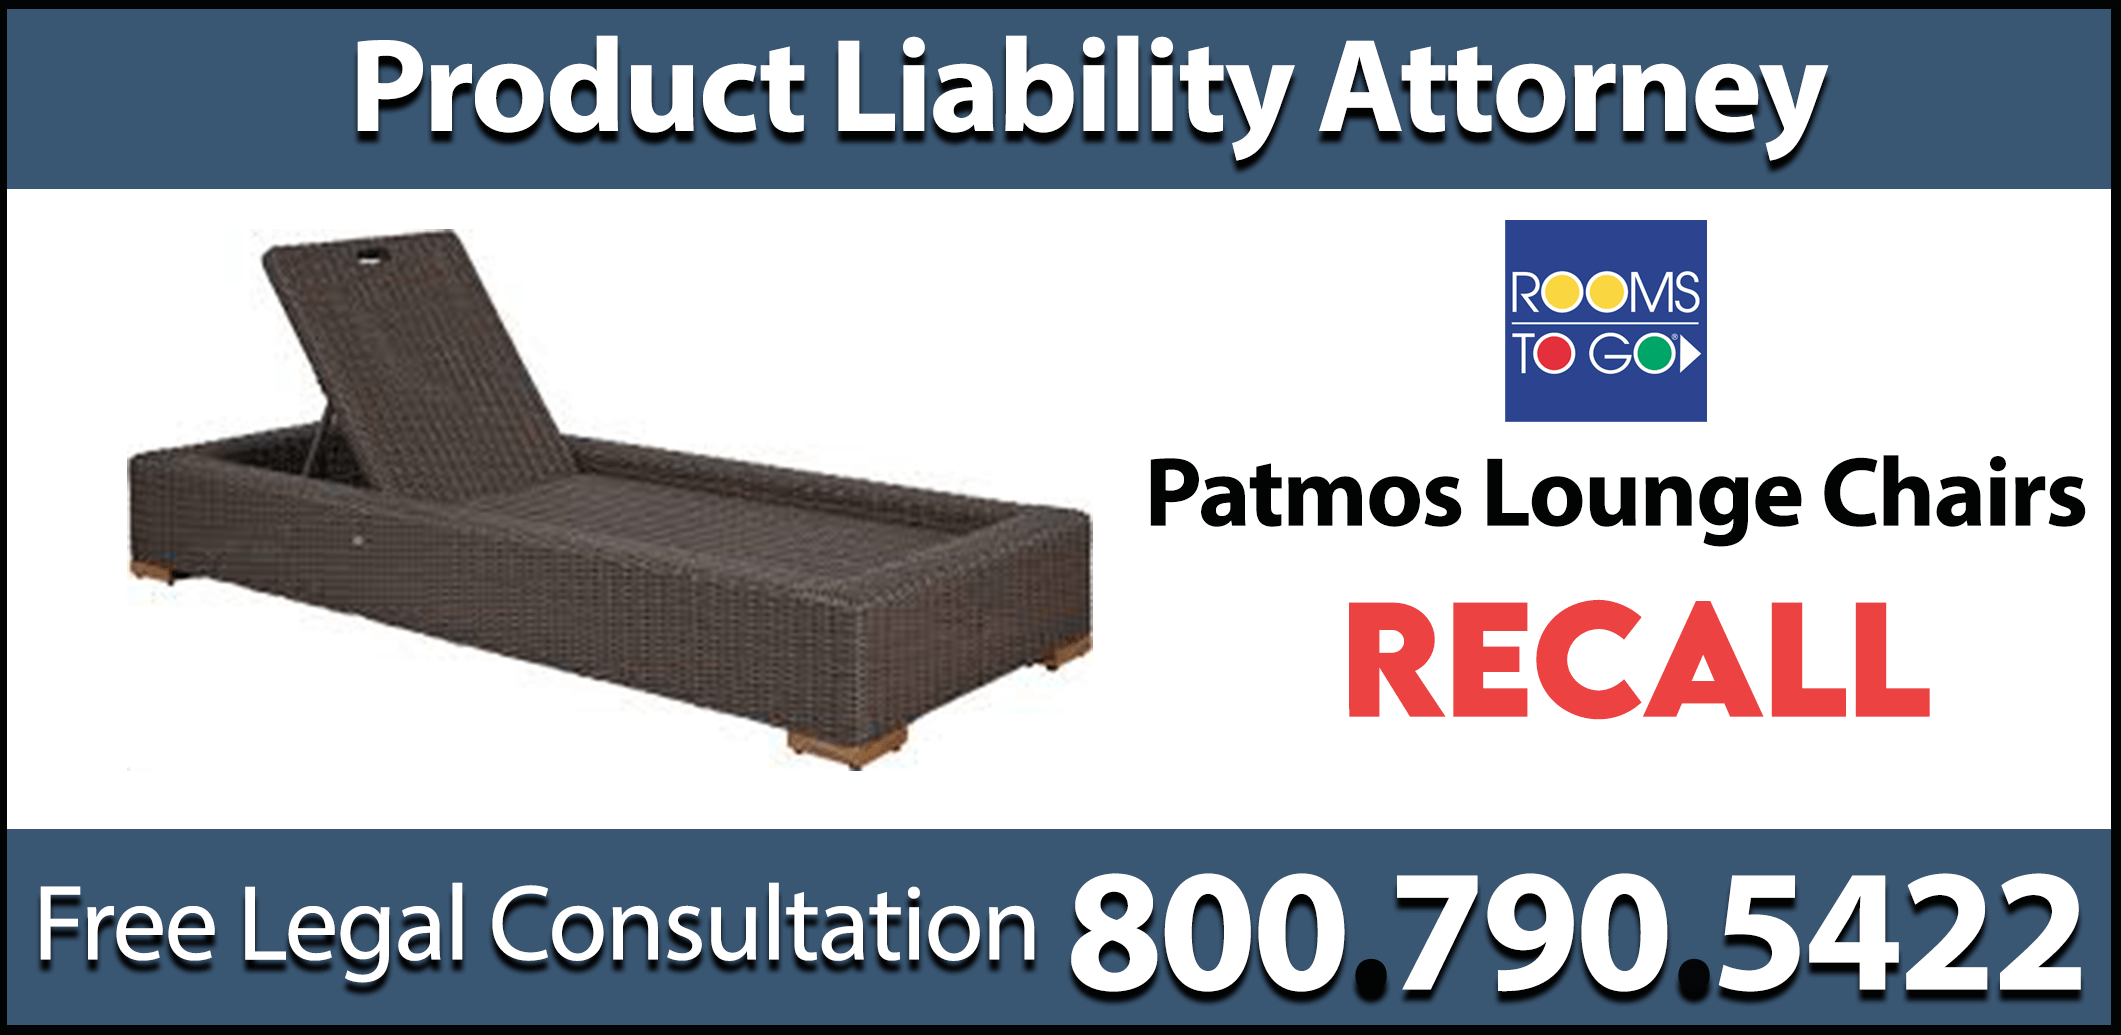 patmos chaise lounge chair recall rooms to go product liability lawsuit compensation lead hazard poison-lawsuit headache seizure expenses lawyer sue